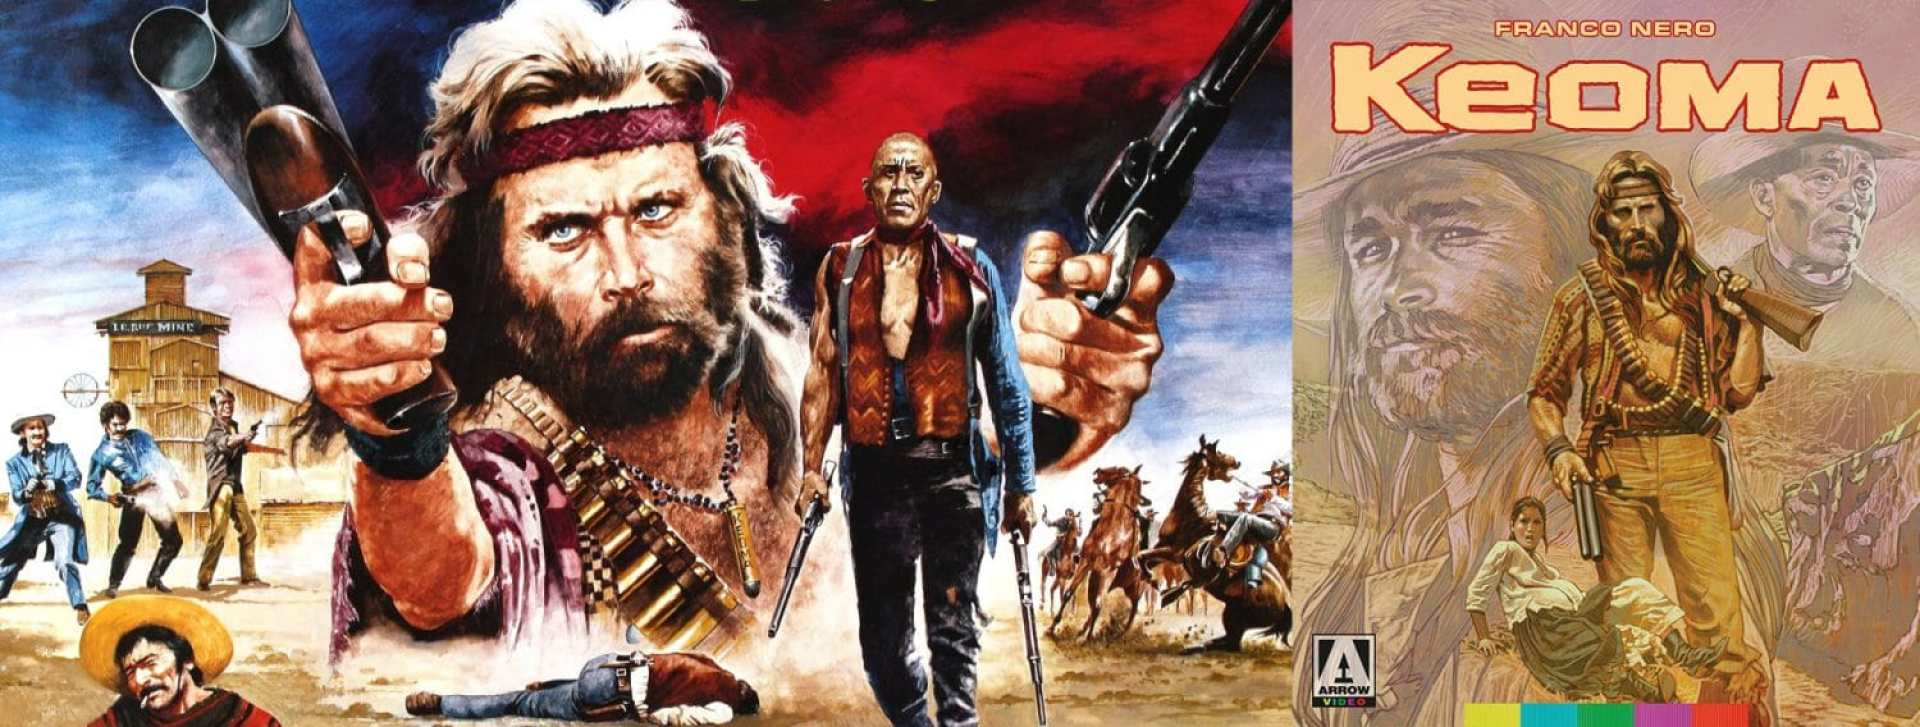 Franco Nero stars in Keoma, available this week from Arrow Video.